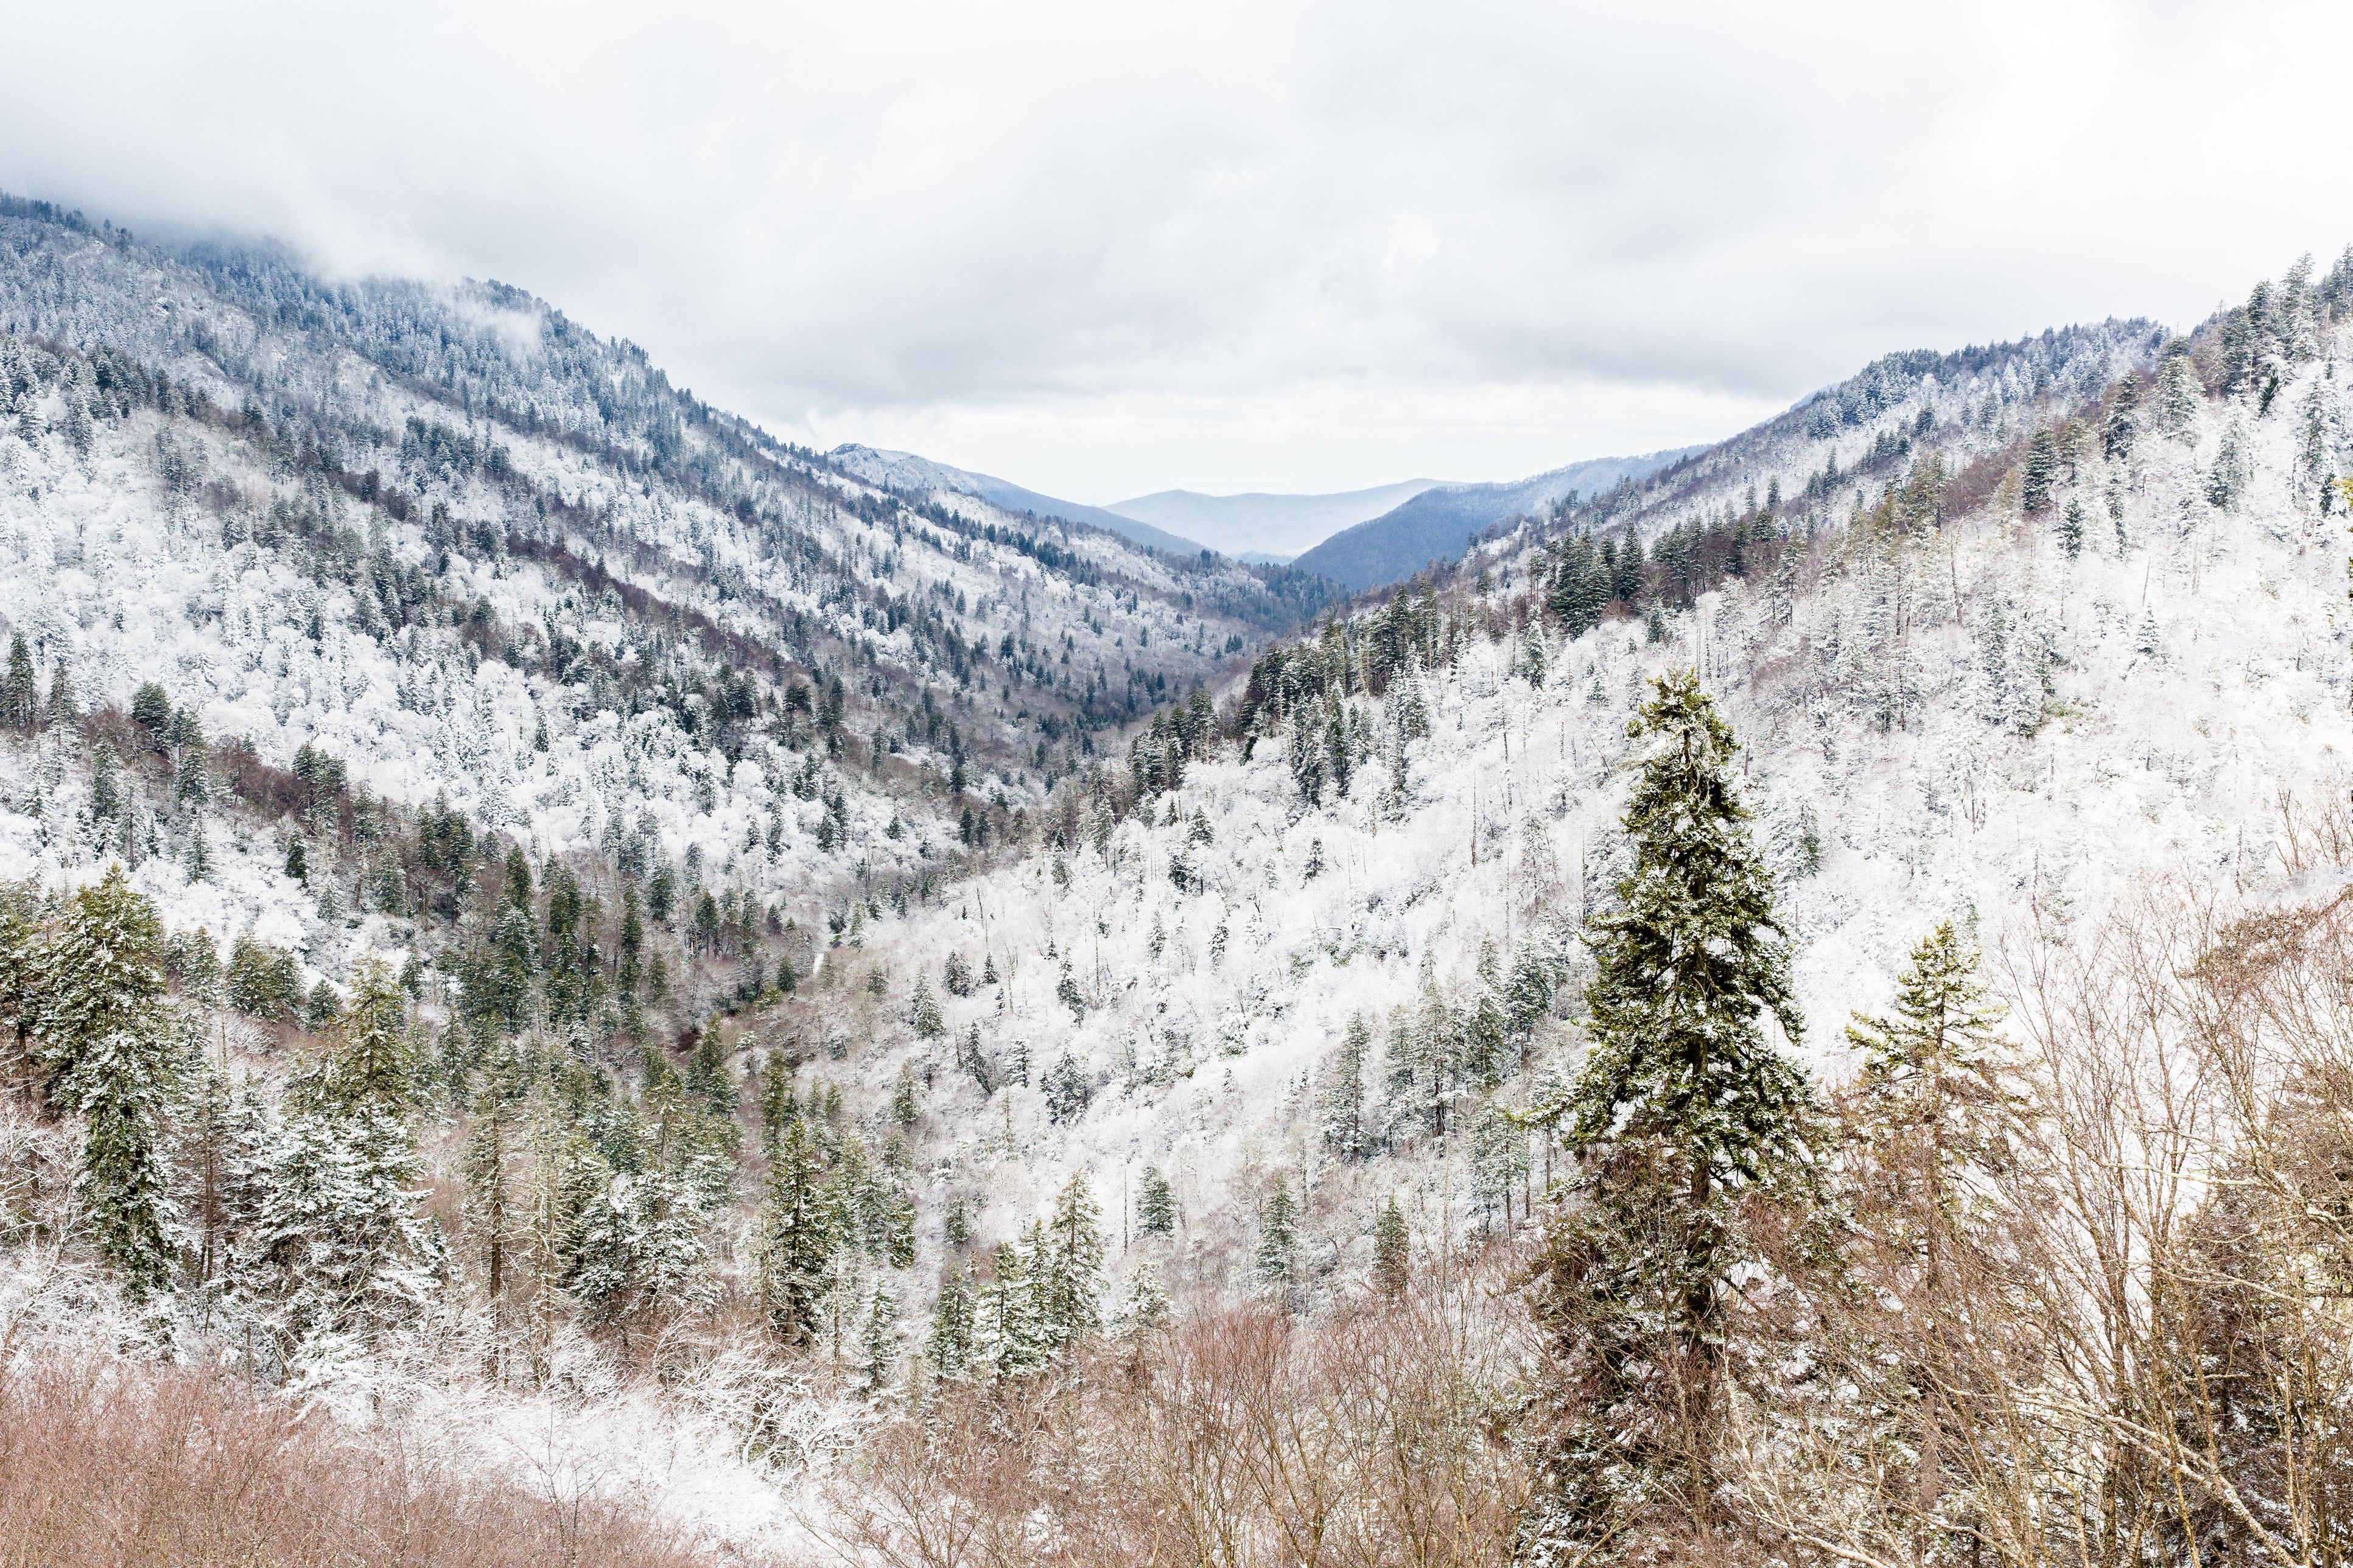 Winter Scene in Great Smoky Mountains National Park